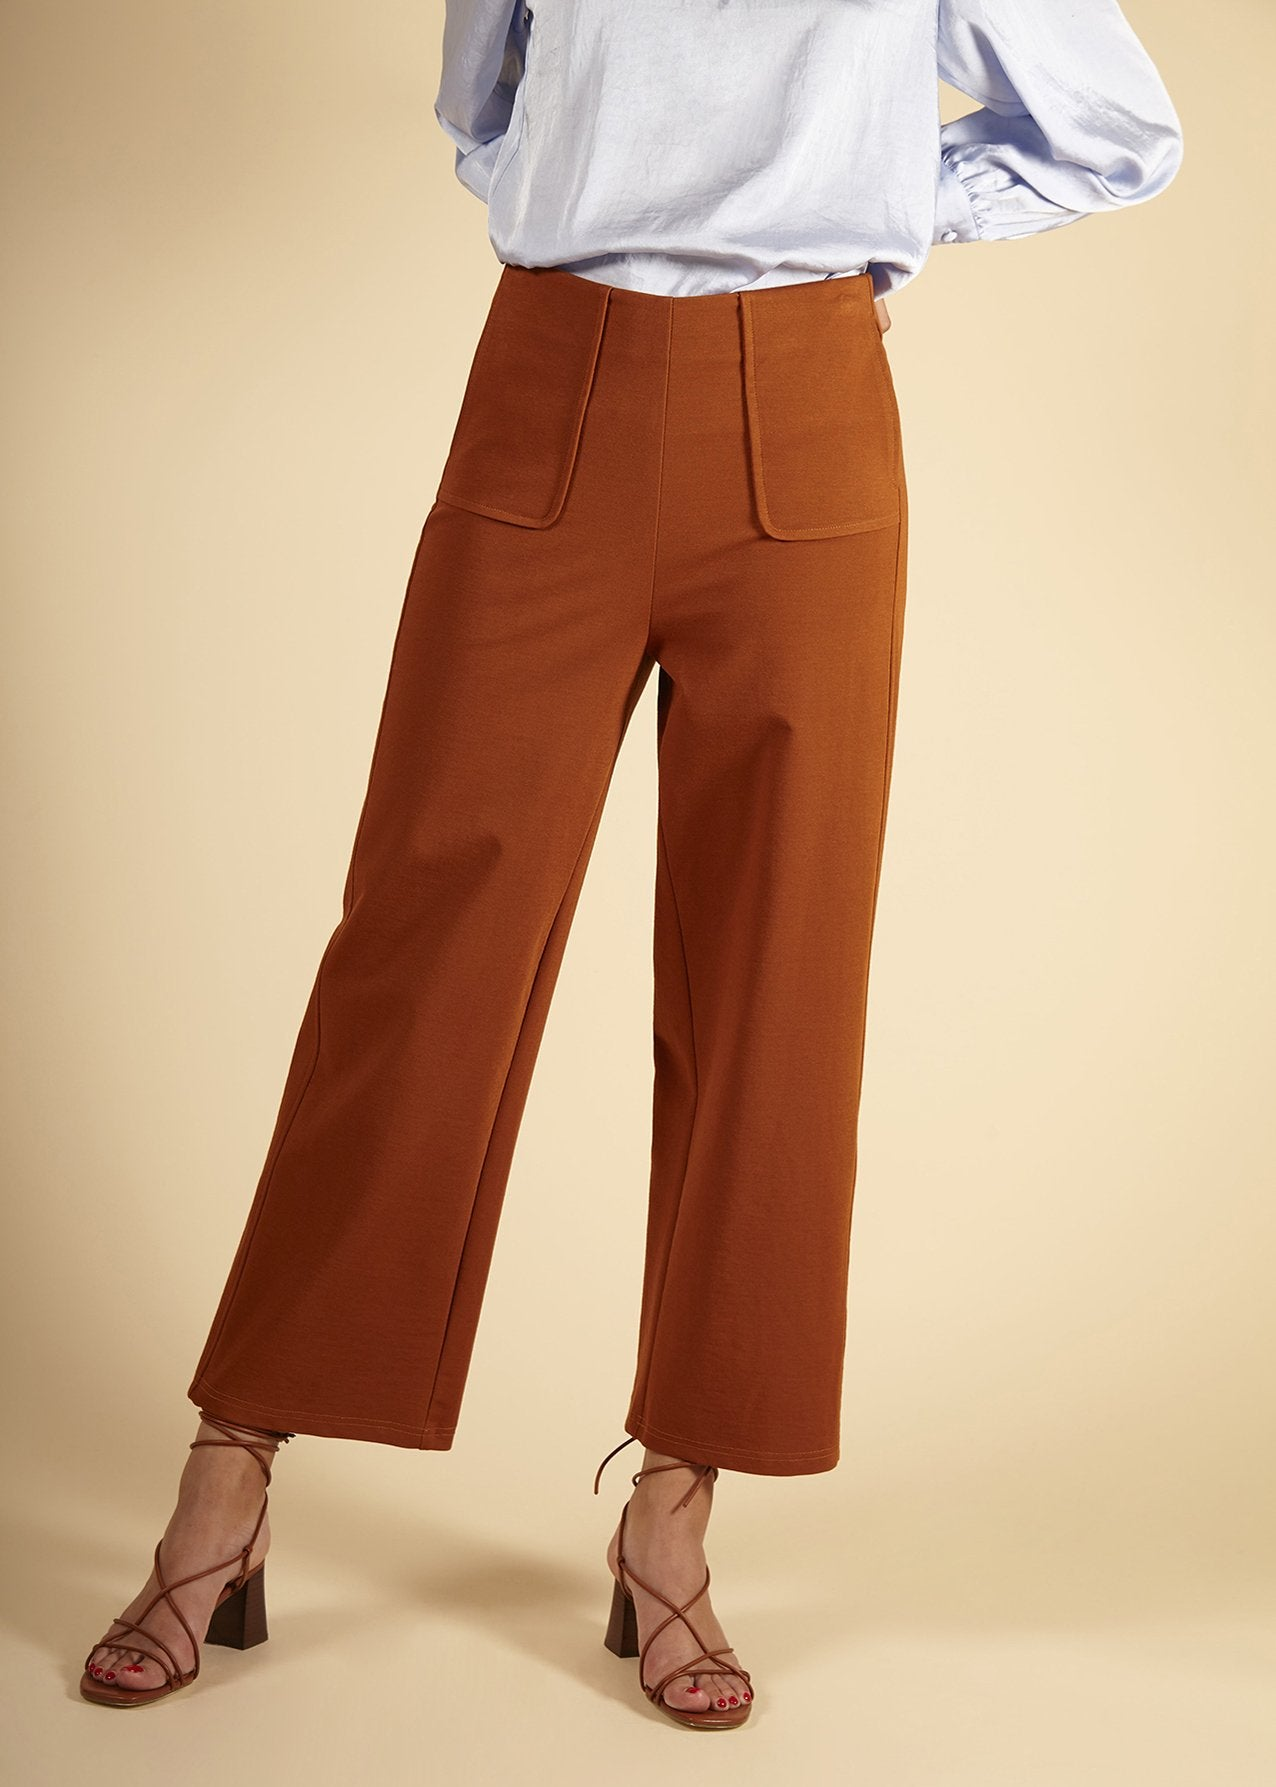 Frnch women Phedra pants F10800